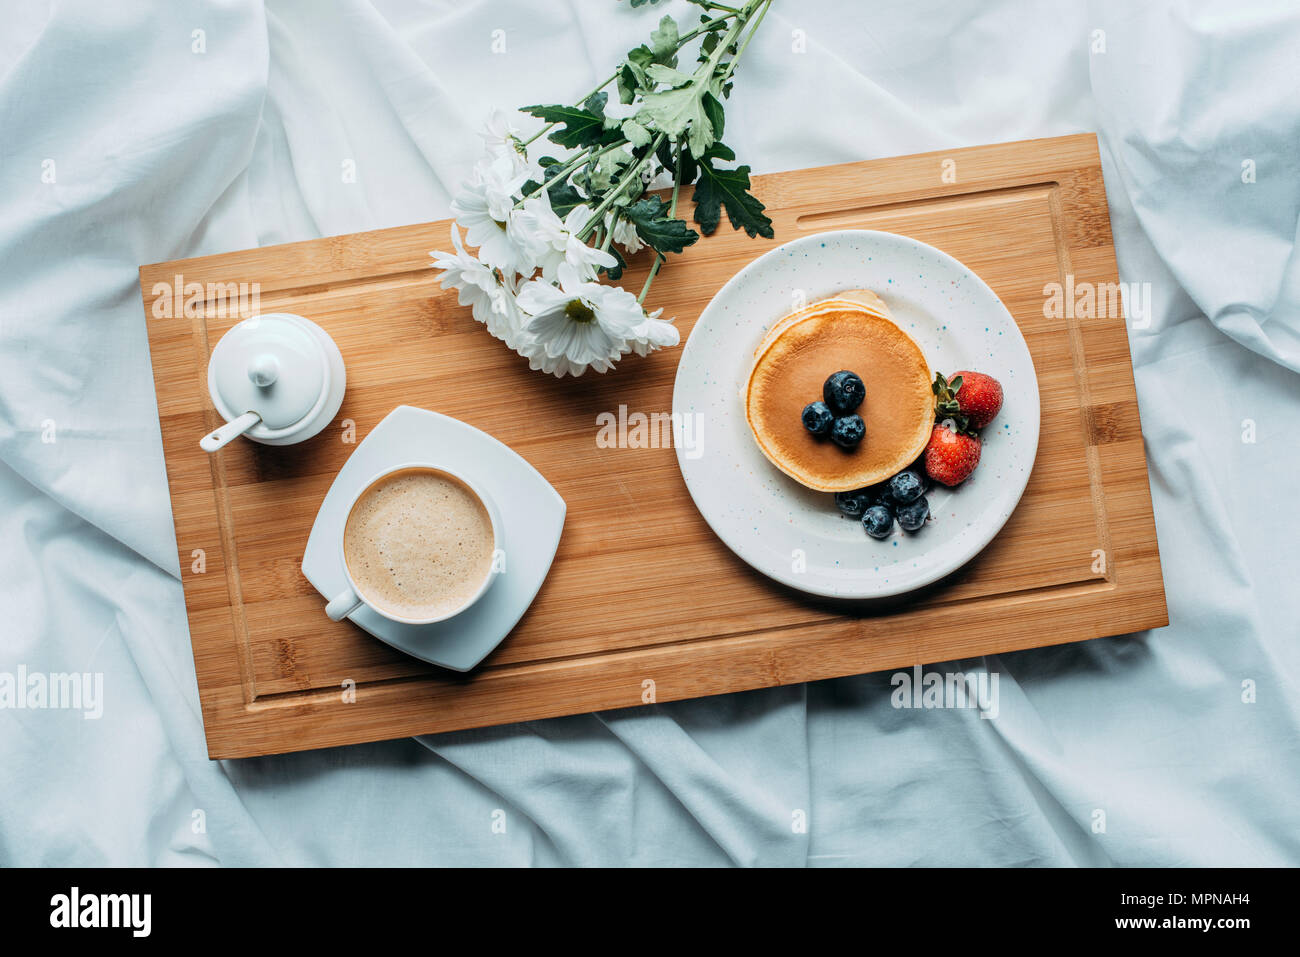 top view of breakfast in bed with delicious pancakes and coffee on wooden tray - Stock Image